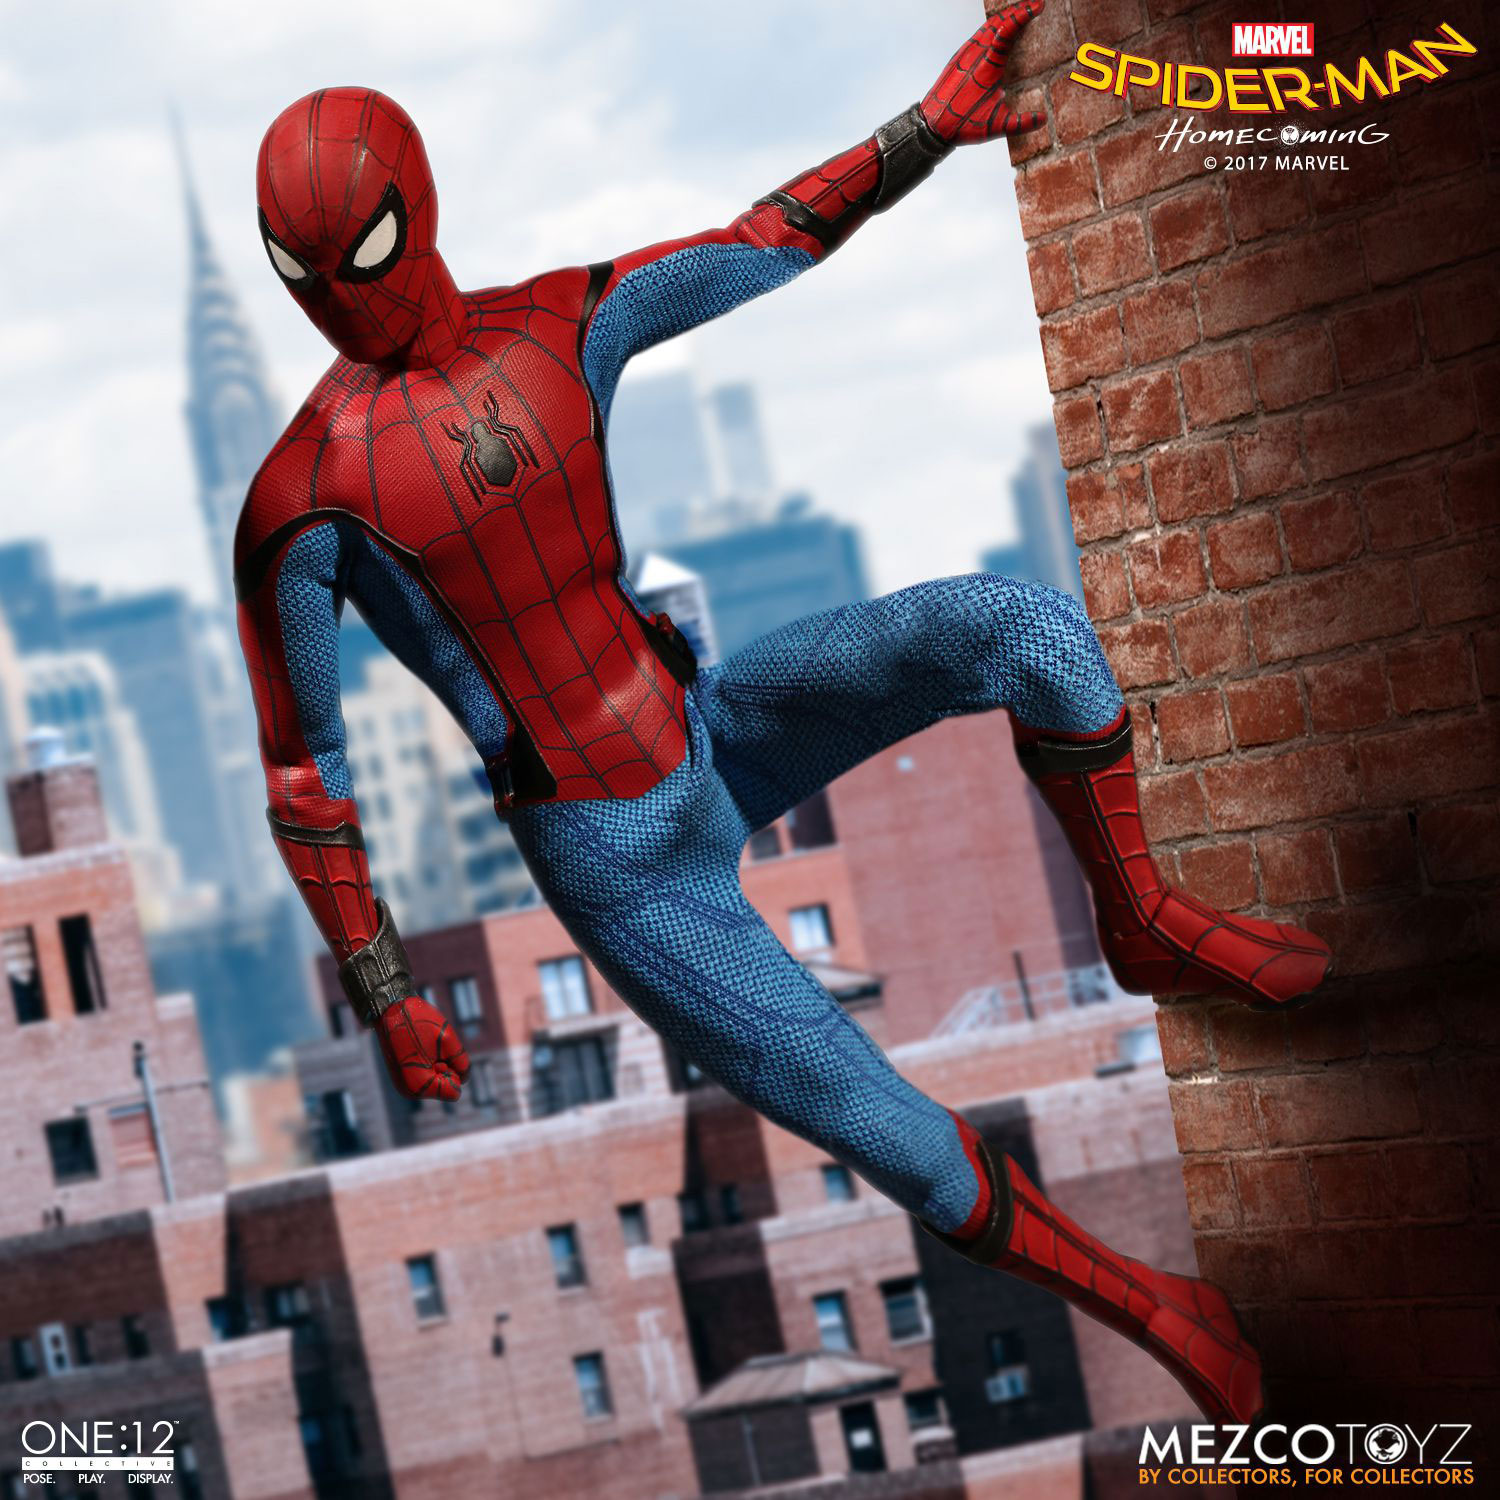 spiderman-homecoming-mezco-one-12-collective-action-figure-3